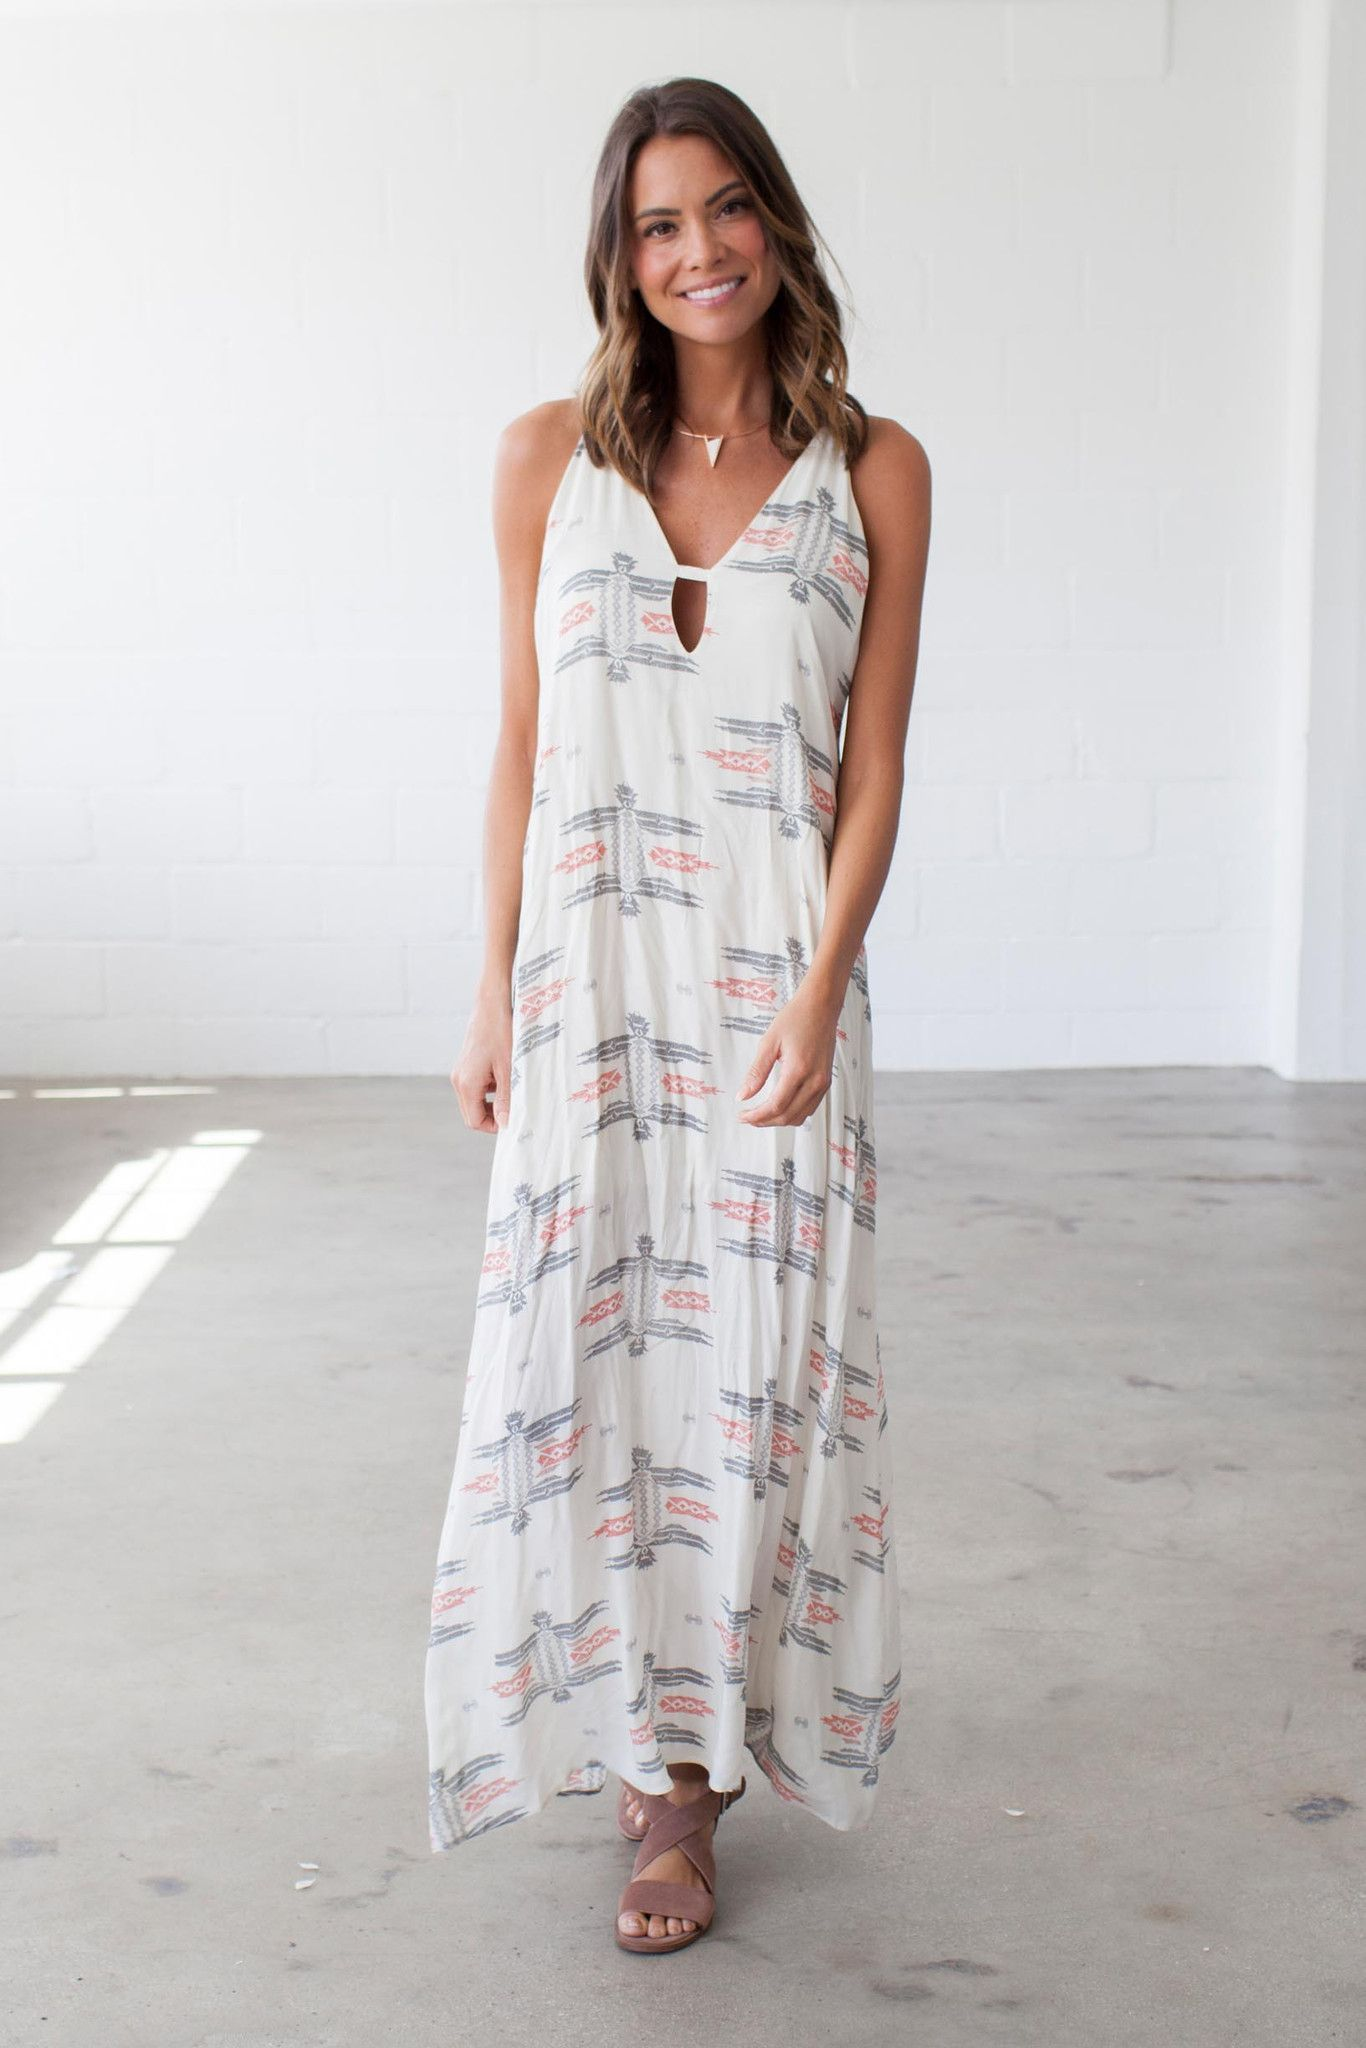 Our Bohme Razorback Aztec Maxi Dress features a red and grey aztec printed  body 43b7d8d7c19c